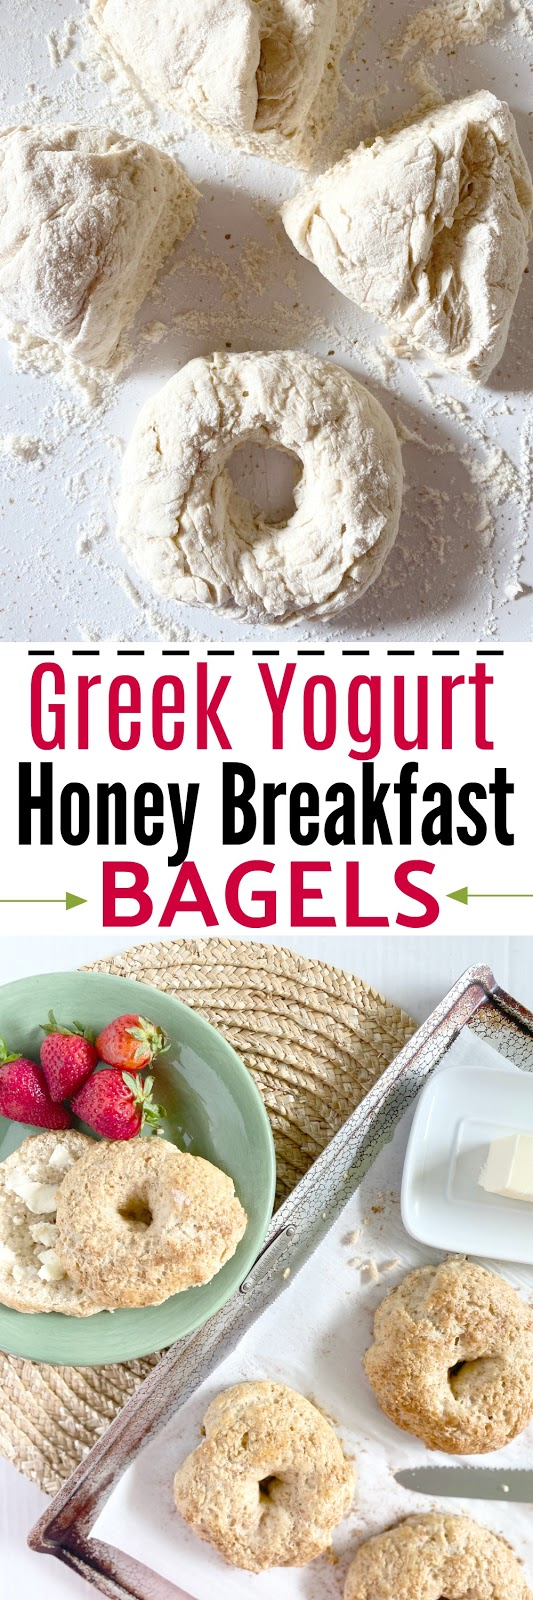 Greek Yogurt Honey Breakfast Bagels #sweetsavoryeats #2ingredients